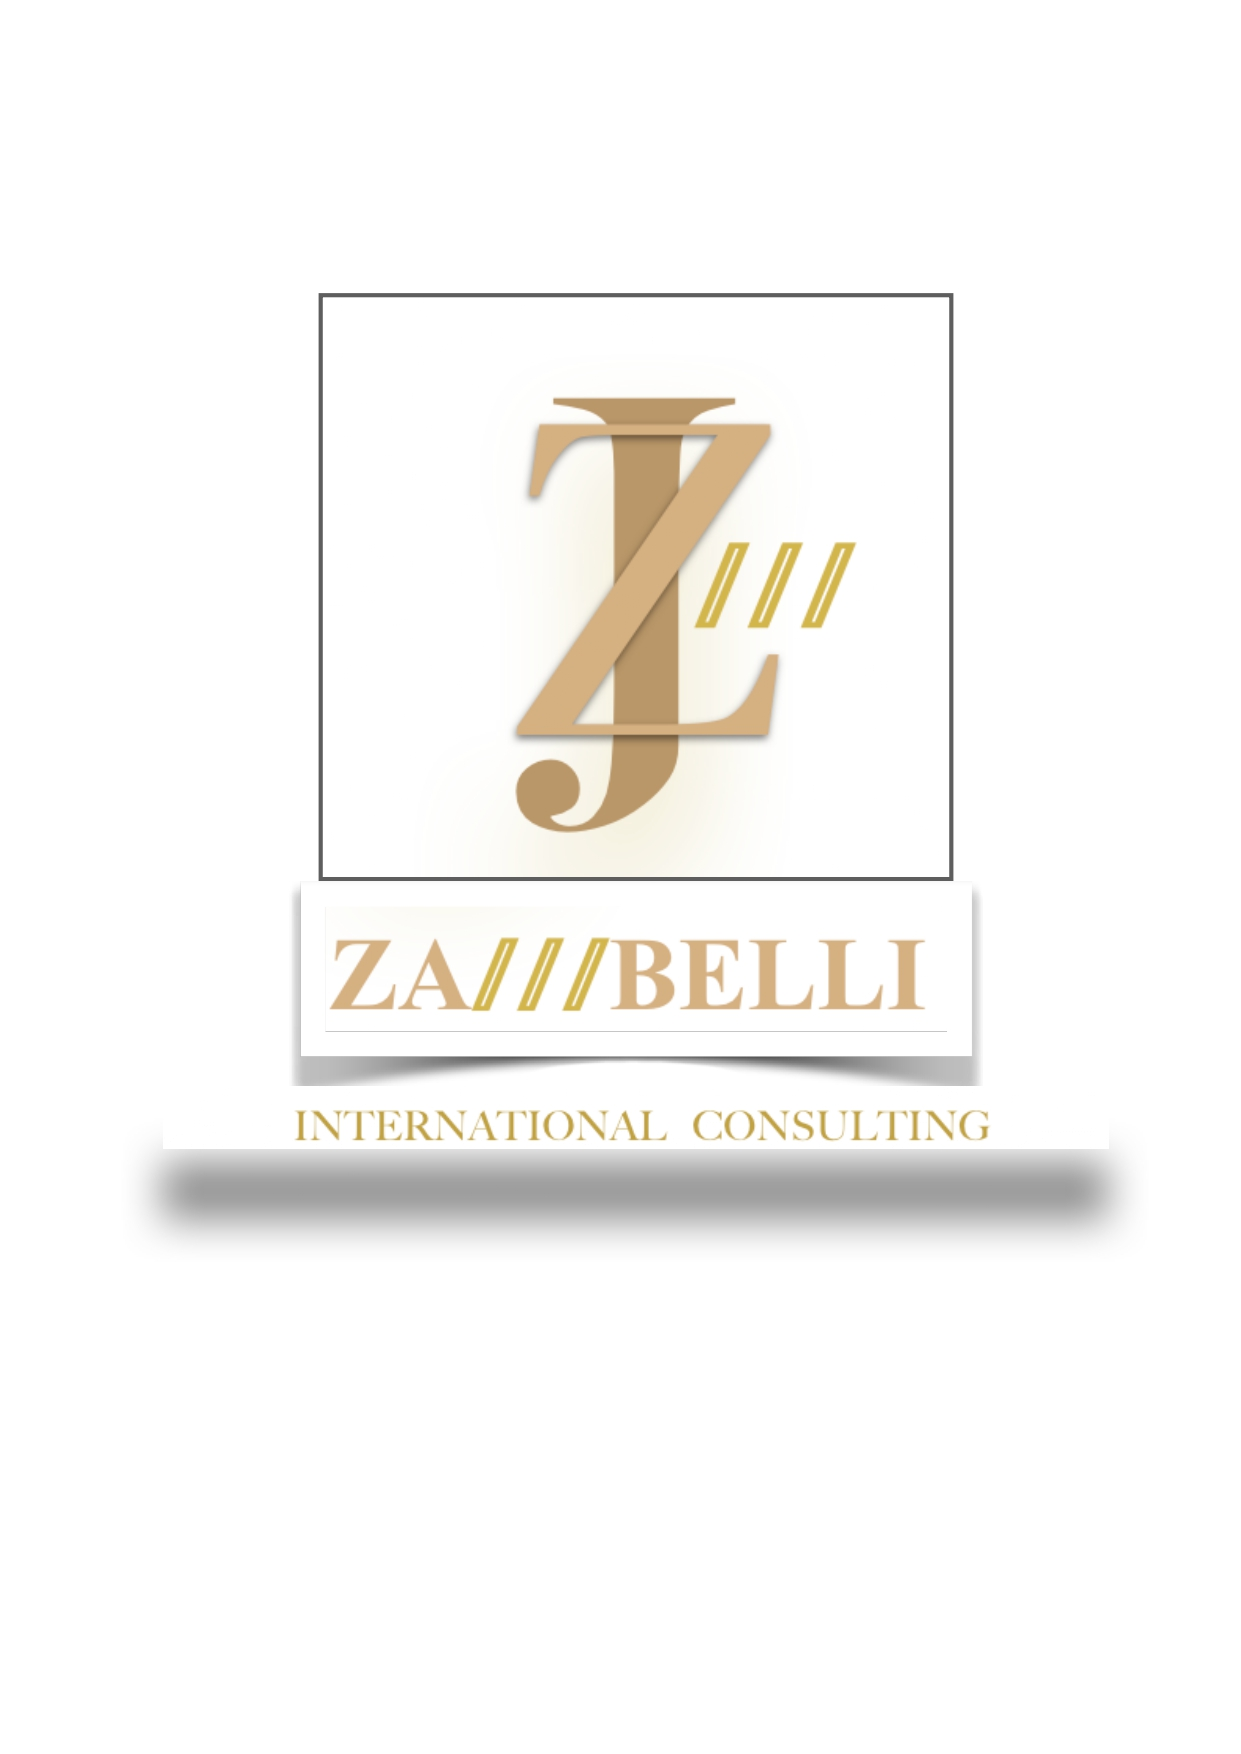 Logo of ZAMBELLI International Consulting